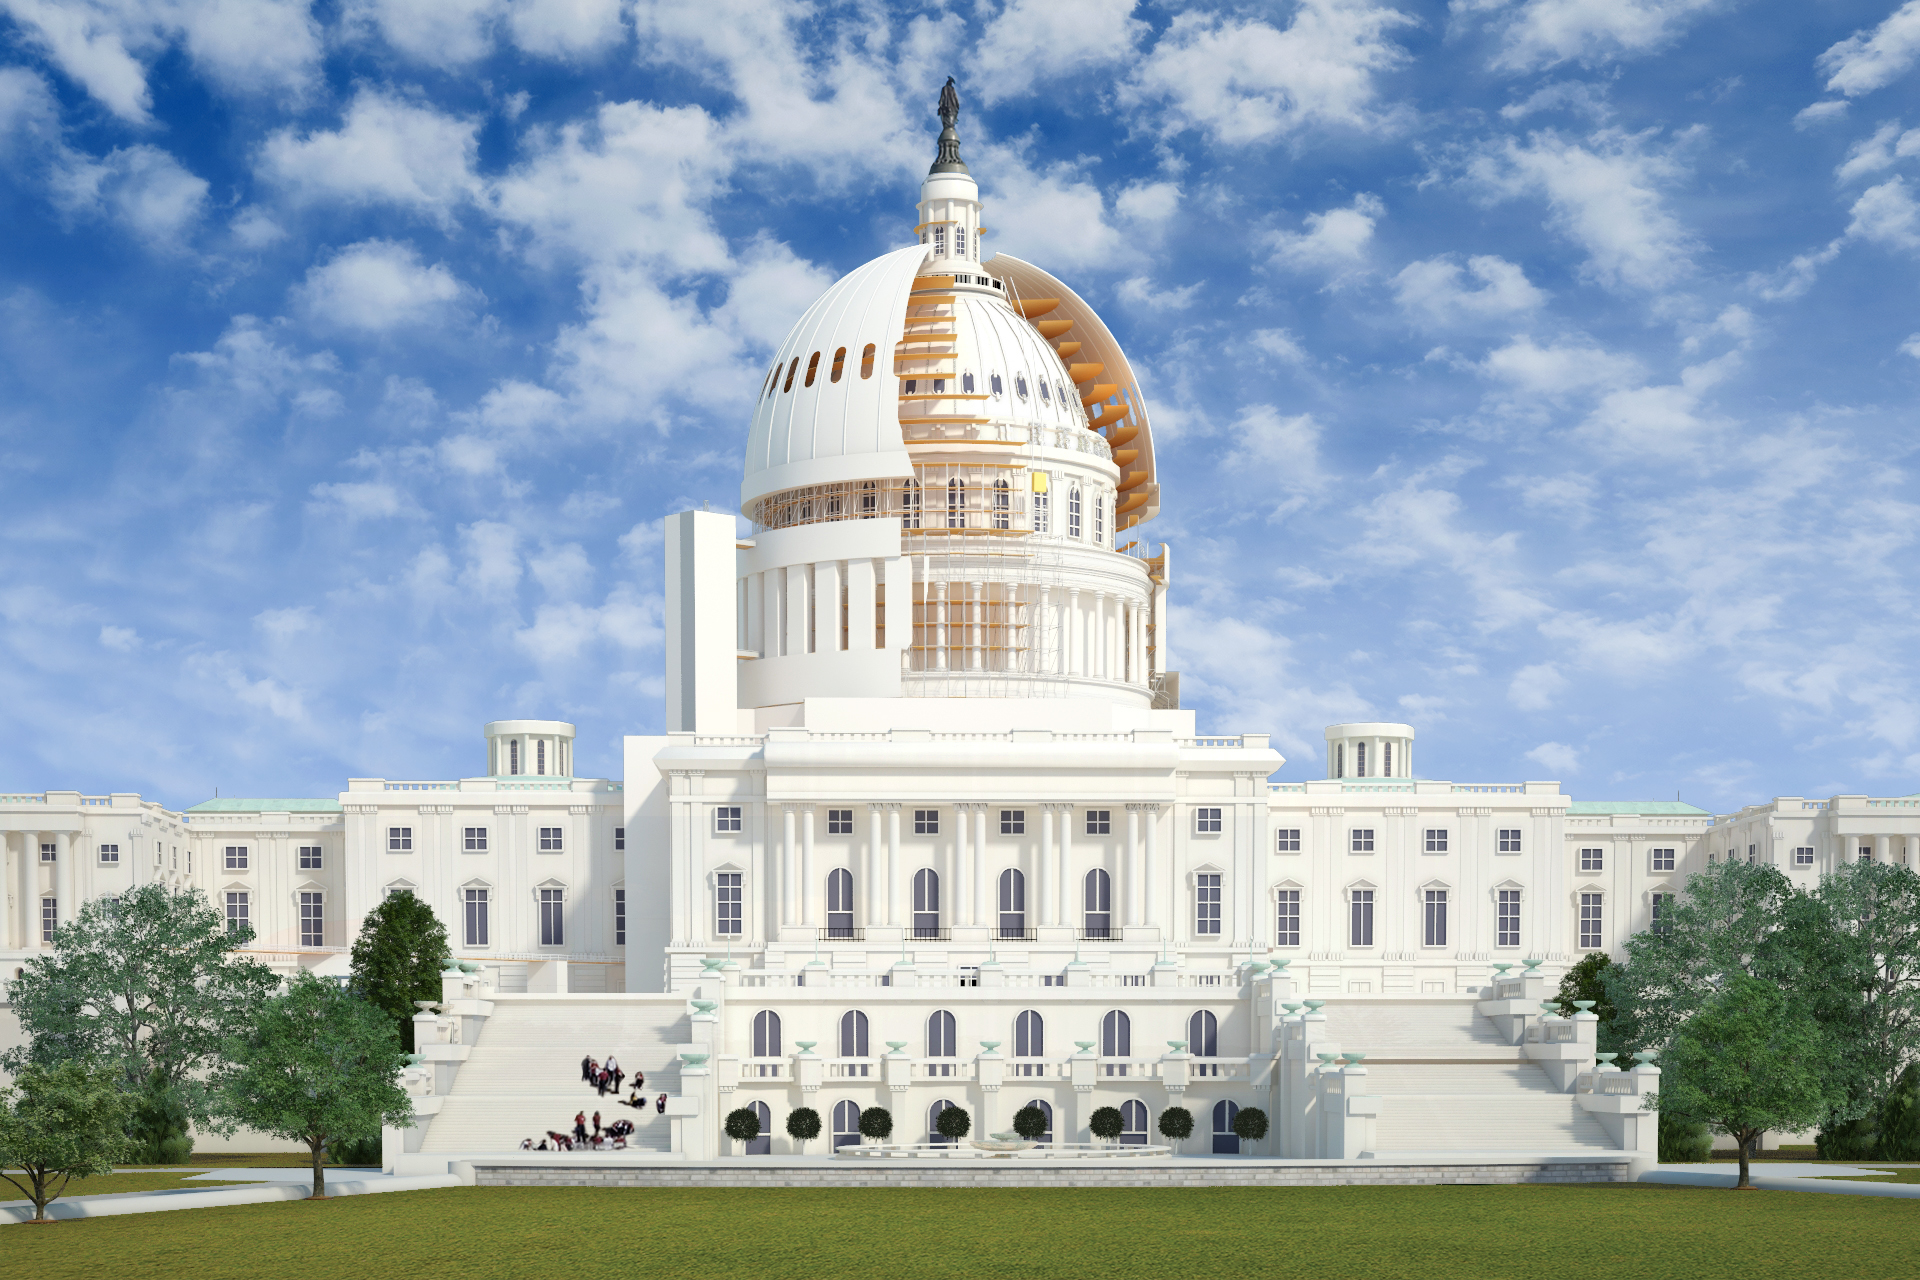 IMD_Rendering_Government_1183_US Capitol Dome Rehabilitation1000_Final.jpg